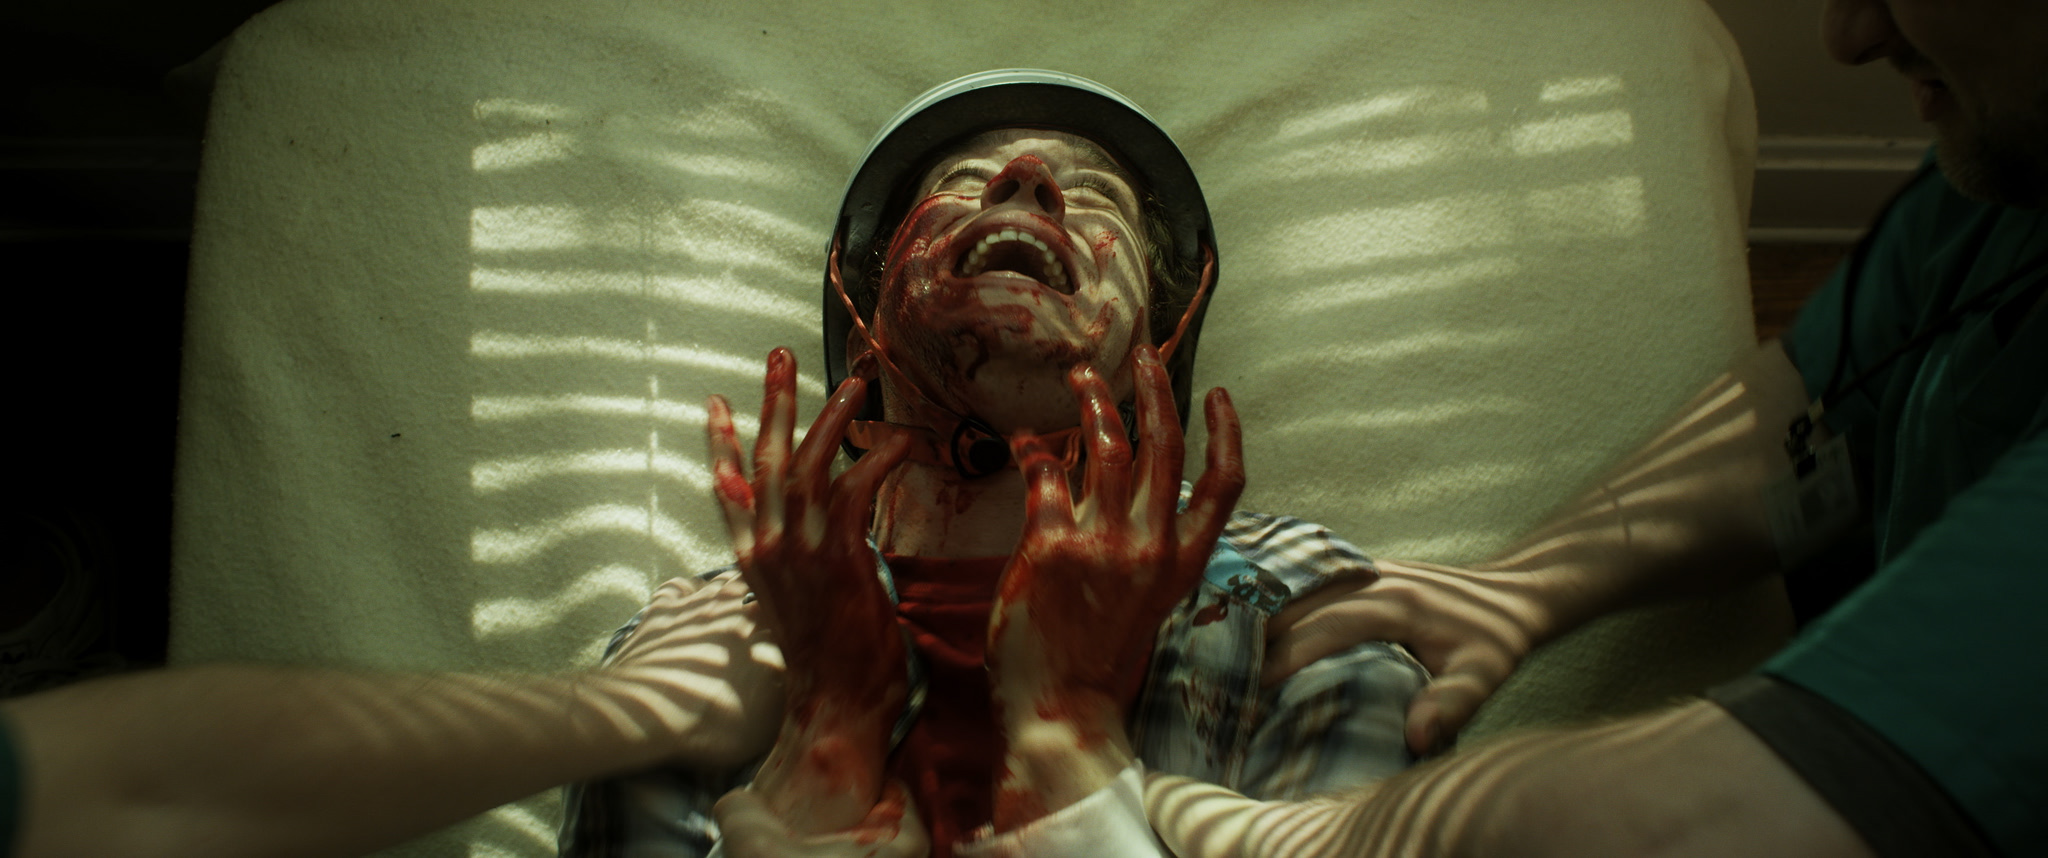 basement 2 chester writhes in agony after his attack on